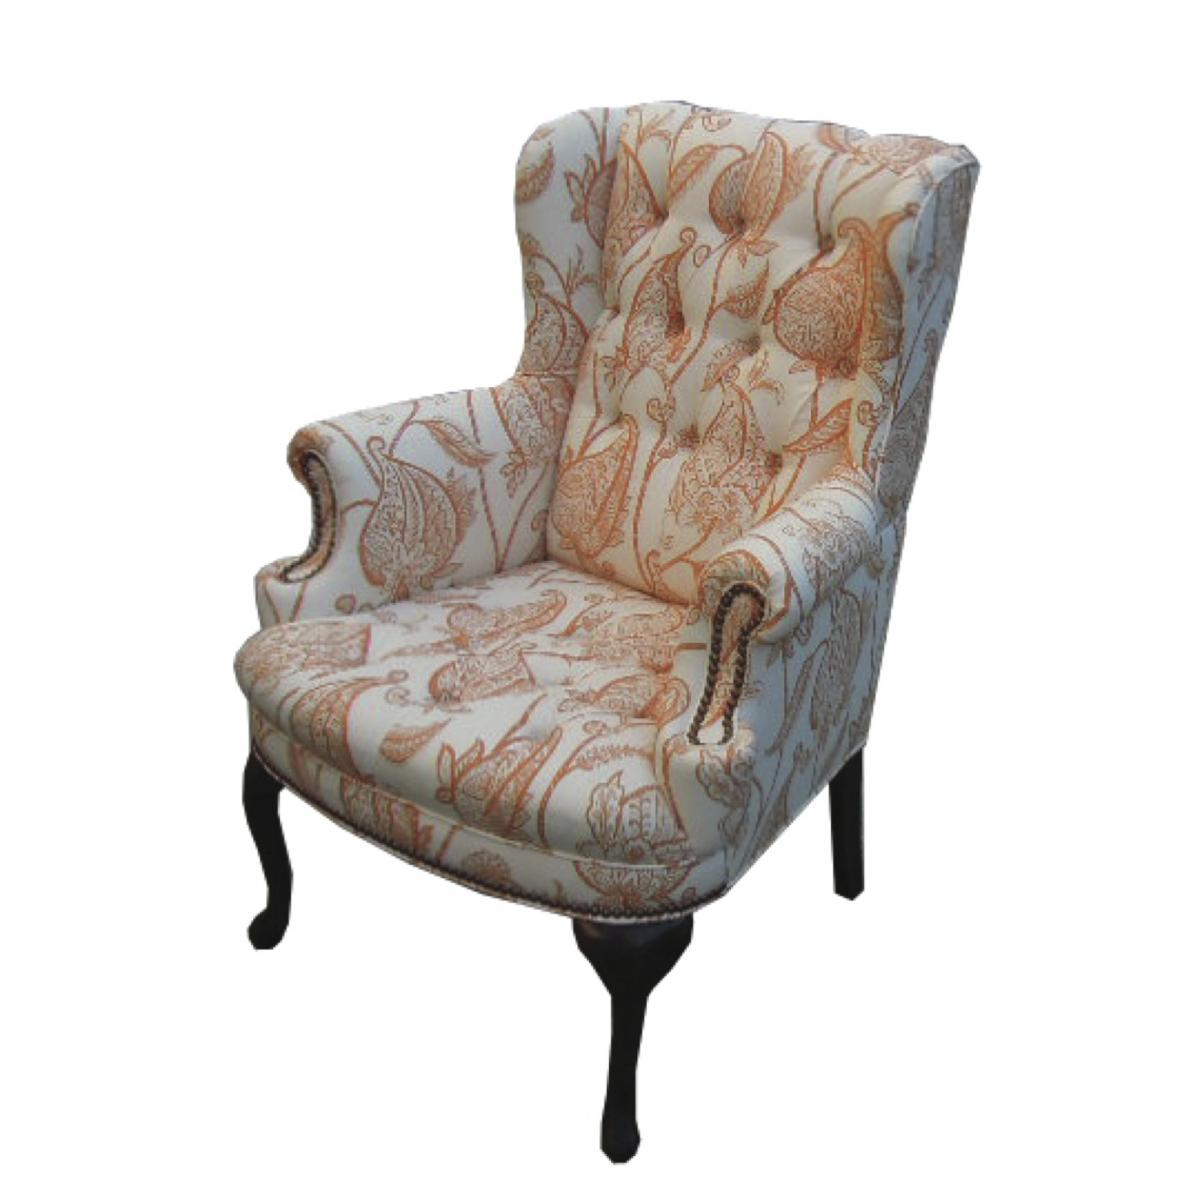 where to get chairs reupholstered buy chair covers and sashes detailing with tufts mod restoration